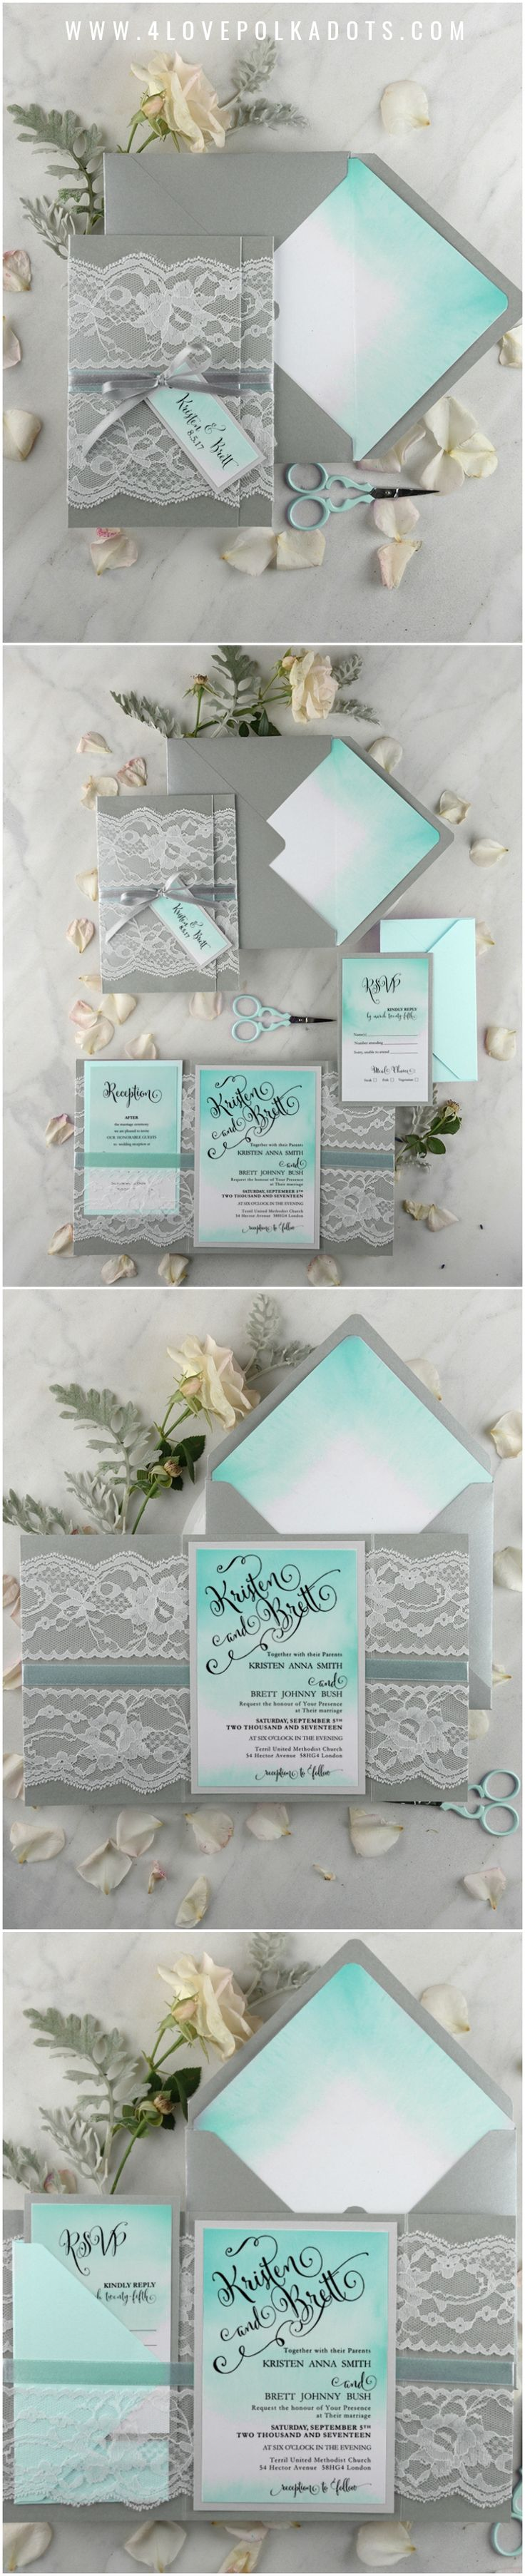 Tiffany blue lace ombre wedding invitation #ombre #romantic #lace #weddinginvitations #weddingideas #tiffanyblue #turquoise